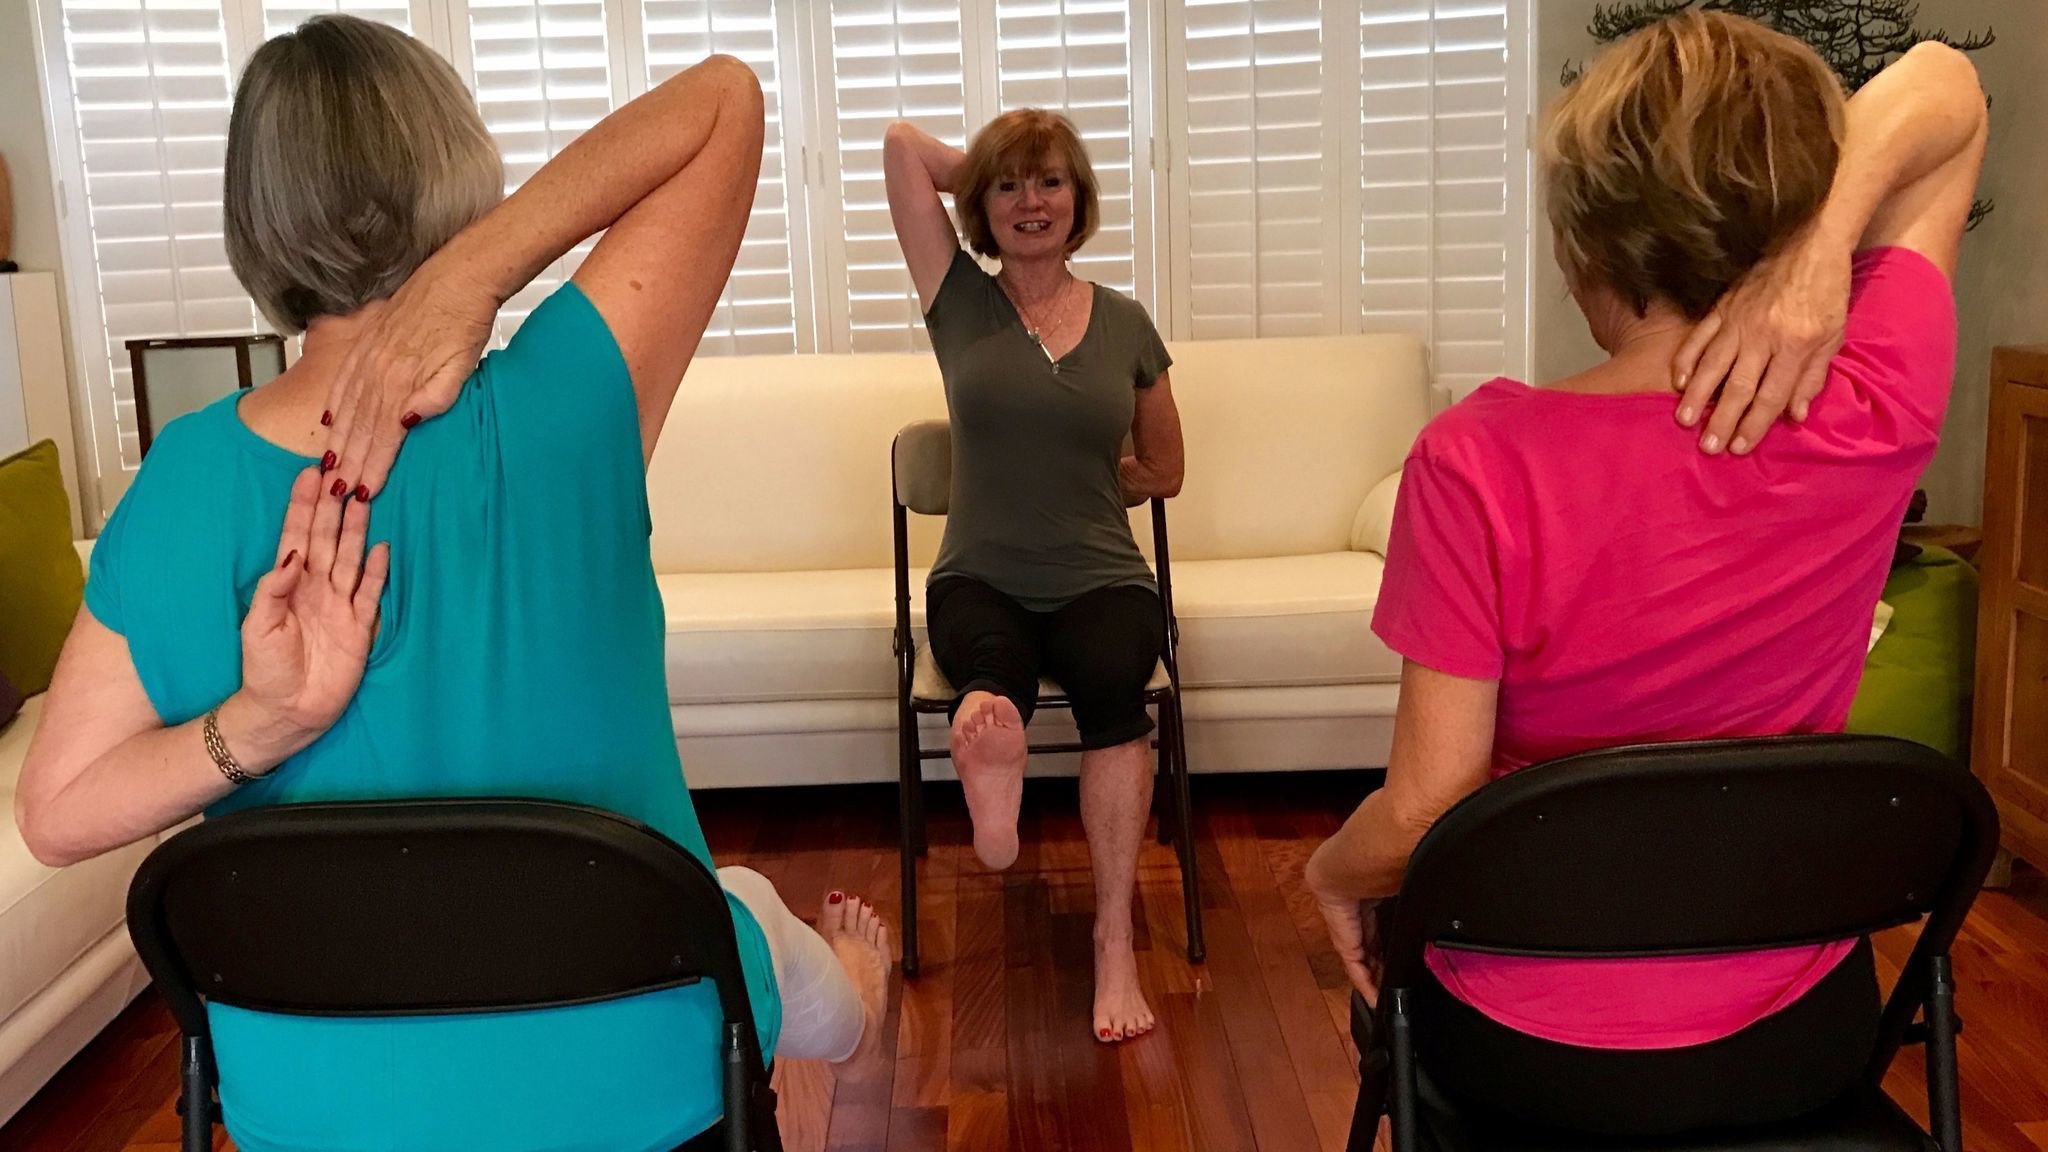 Chair yoga for seniors - Fau Researchers Find Chair Yoga Is Good Medicine For Seniors Sun Sentinel